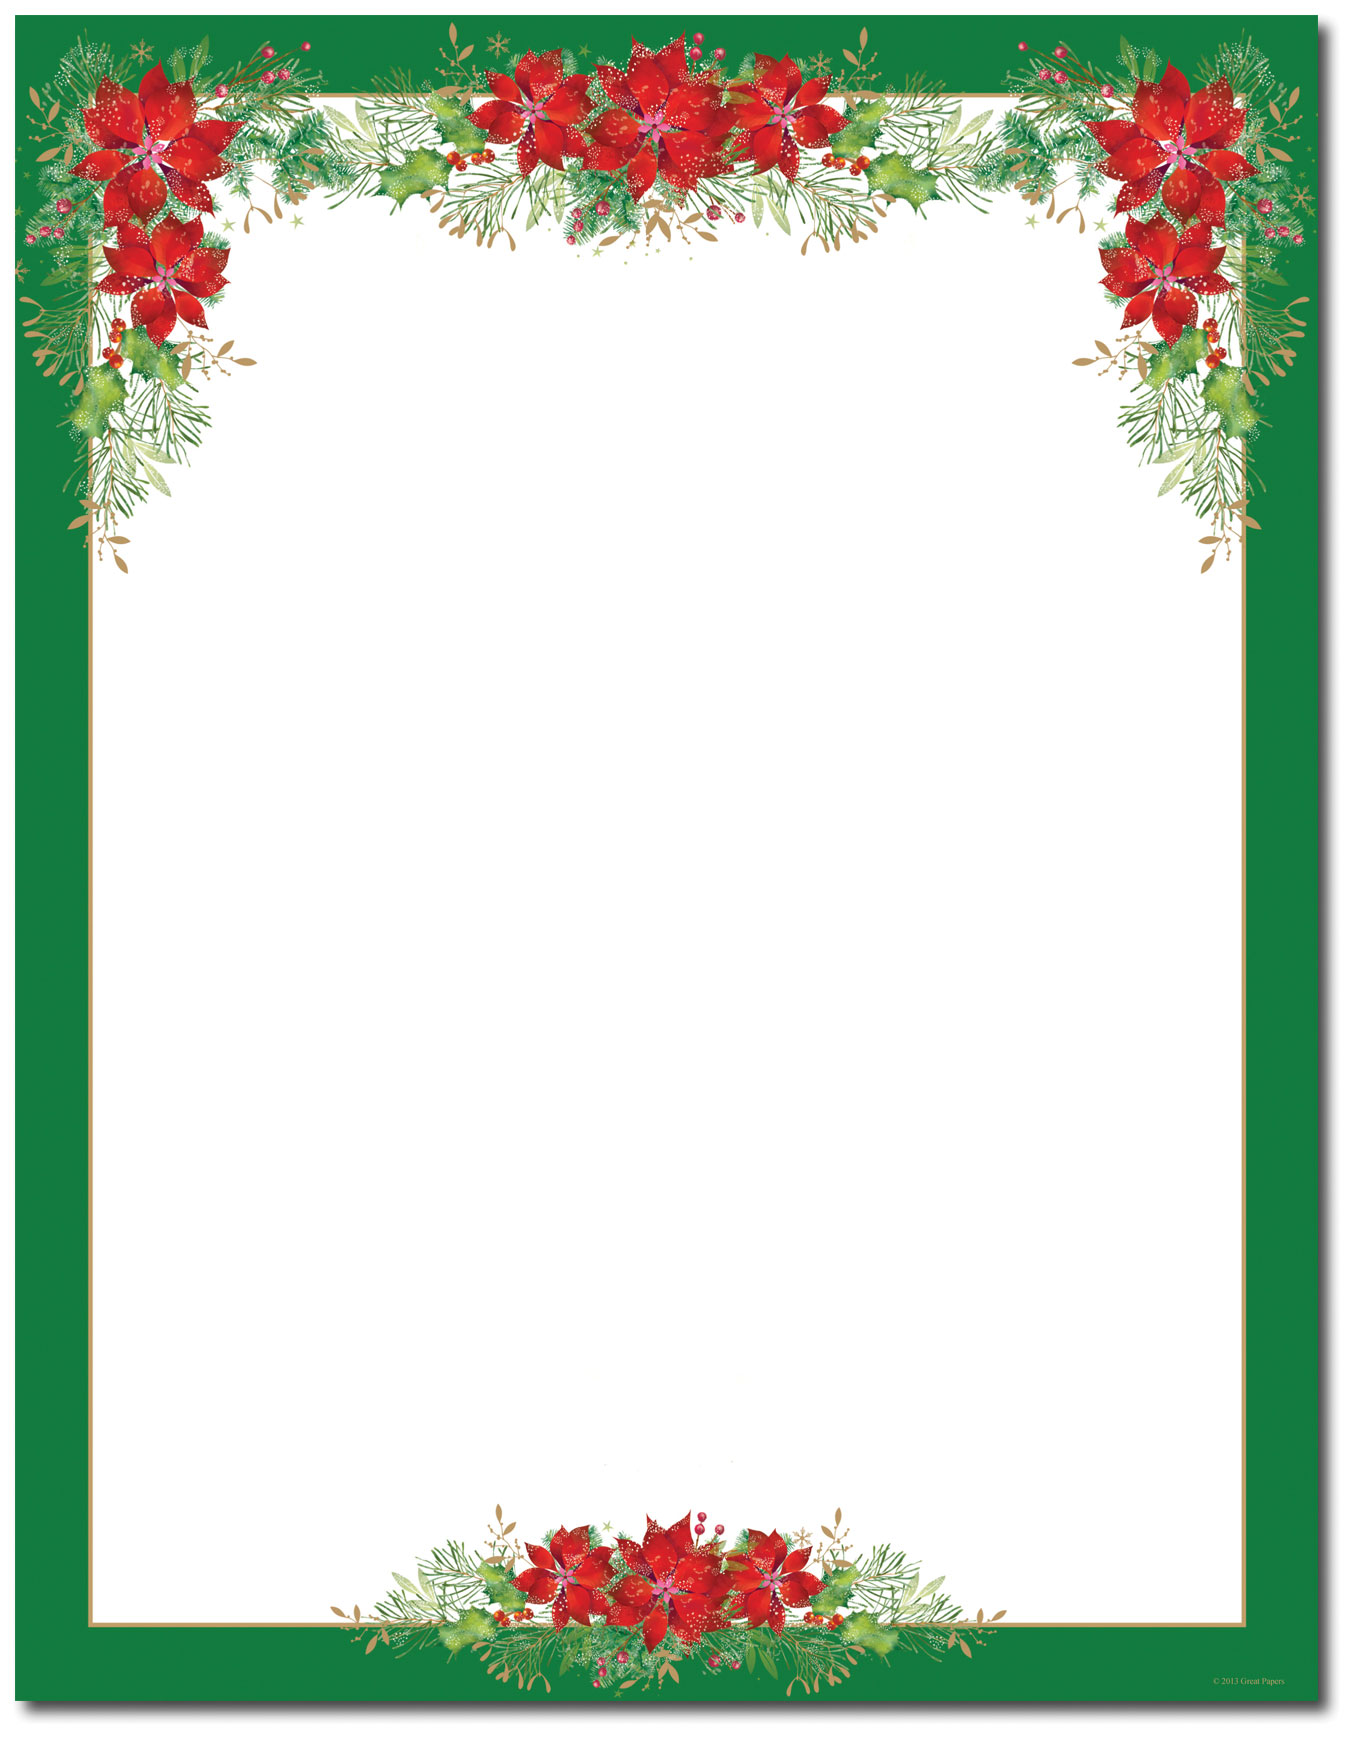 Remarkable image inside printable christmas templates